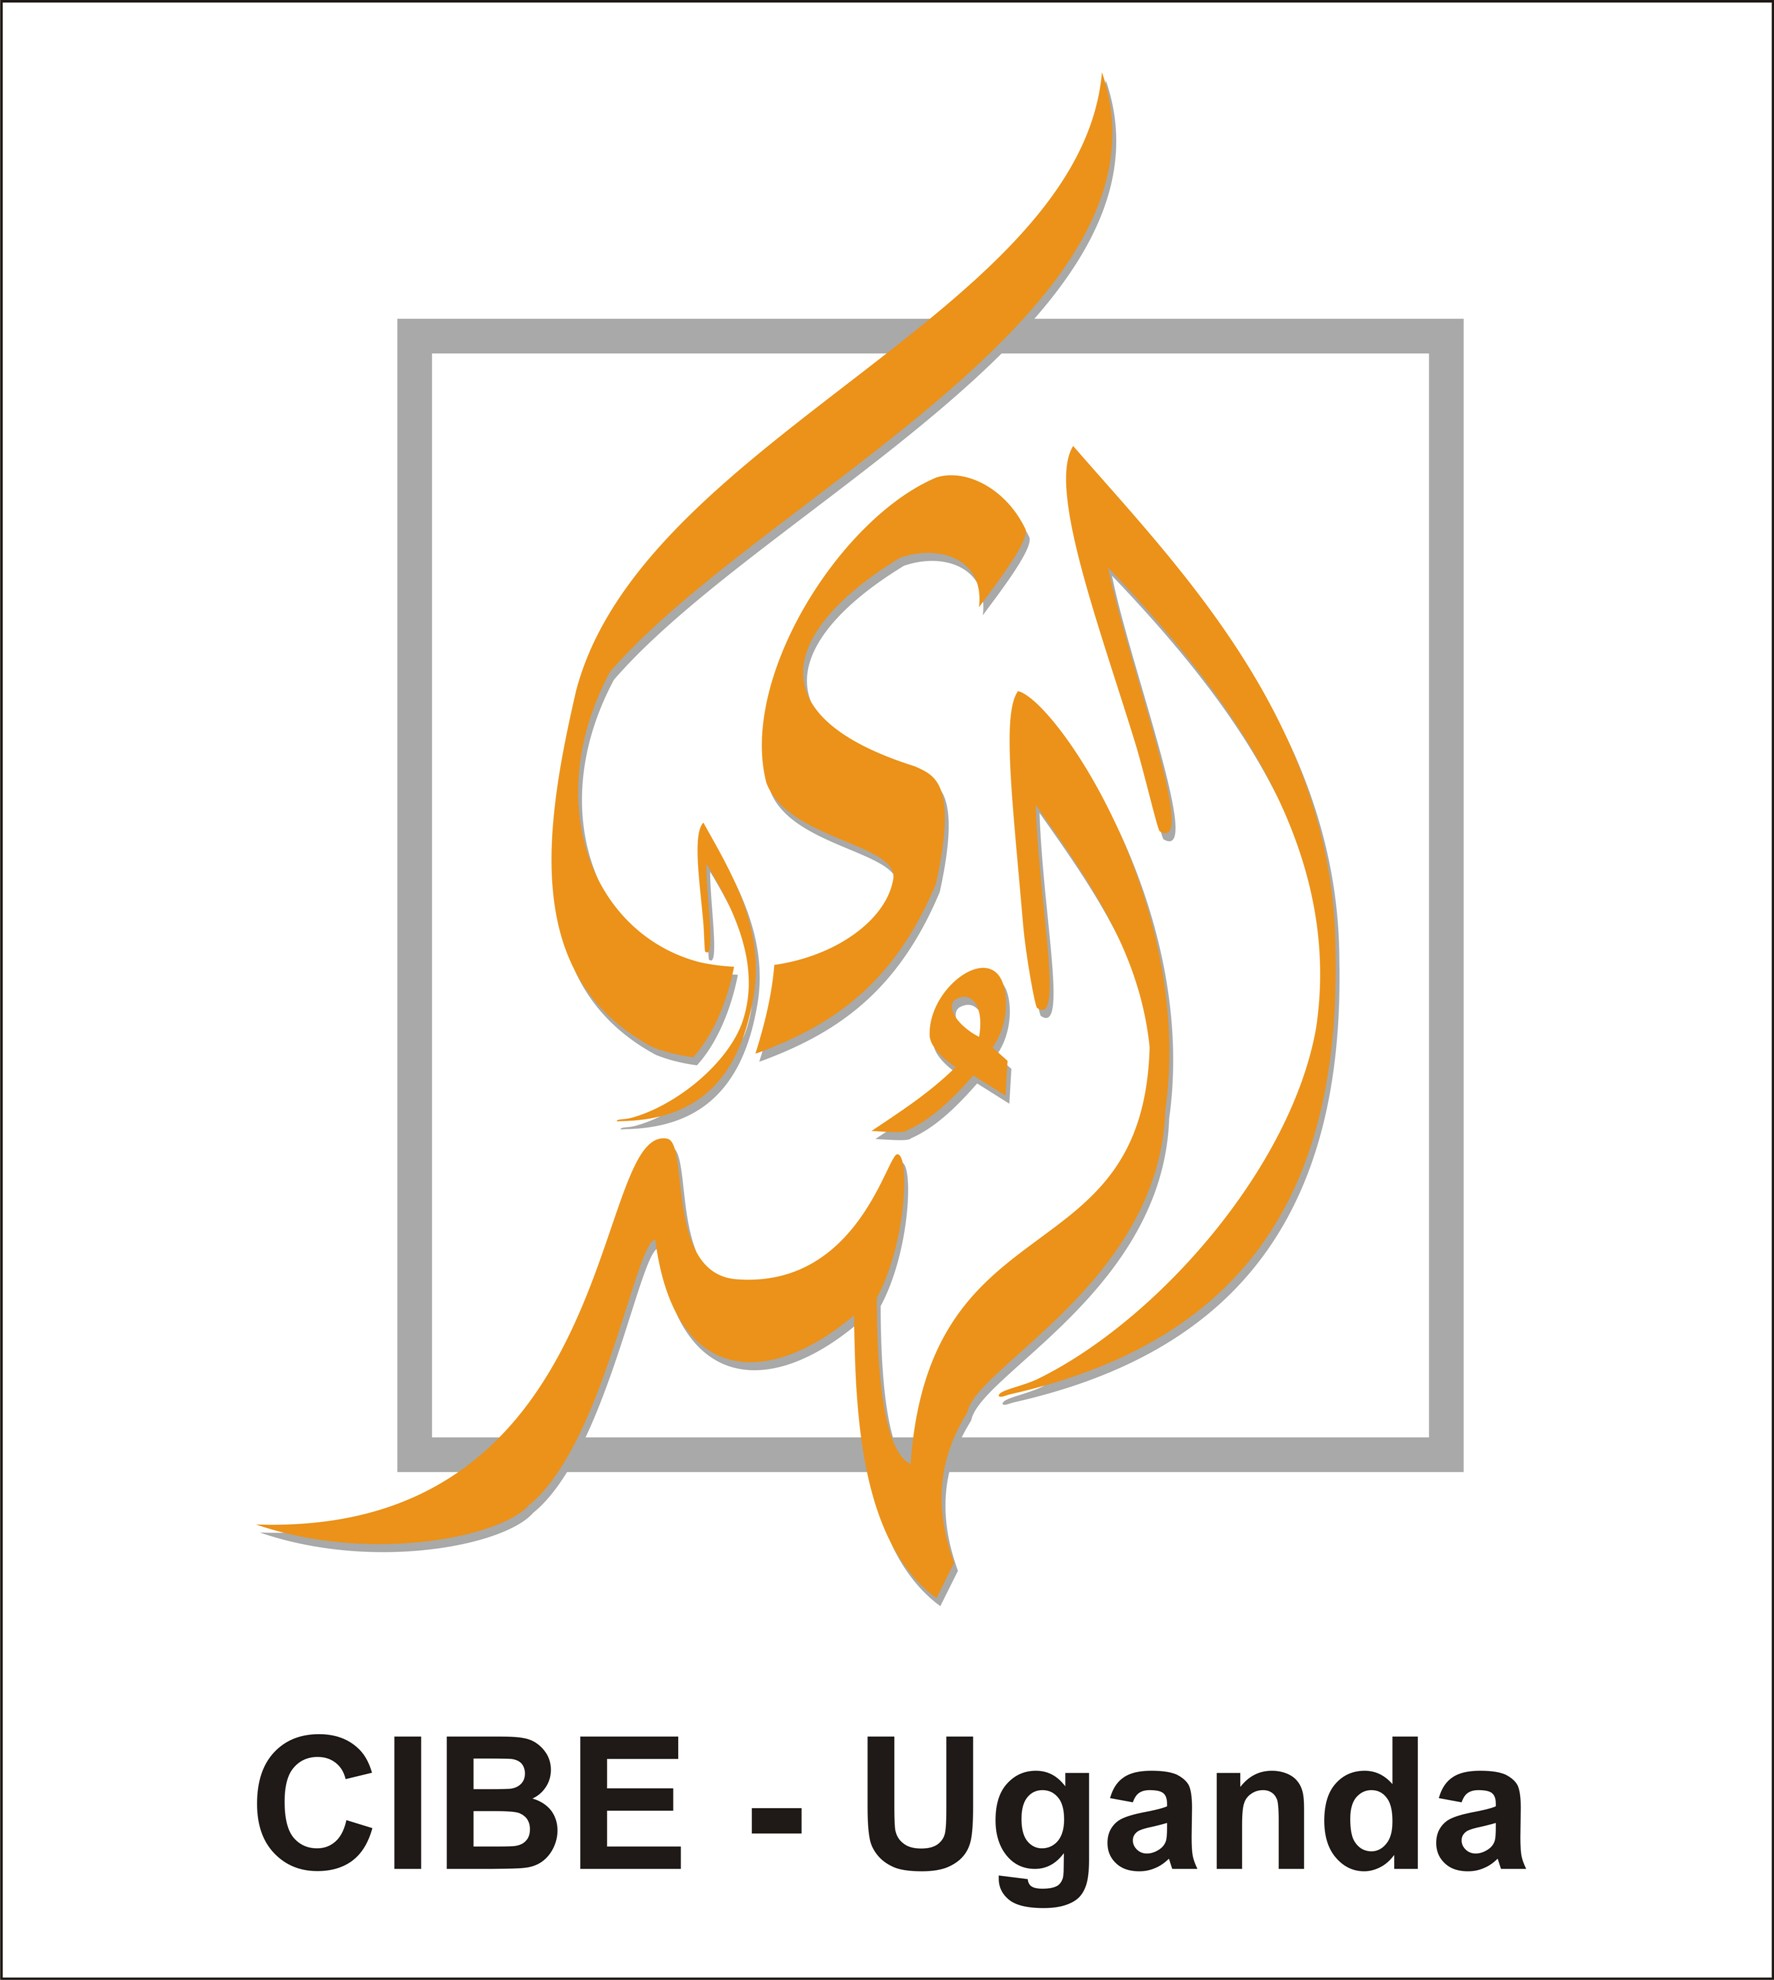 AlHuda CIBE set to enter into Uganda Market